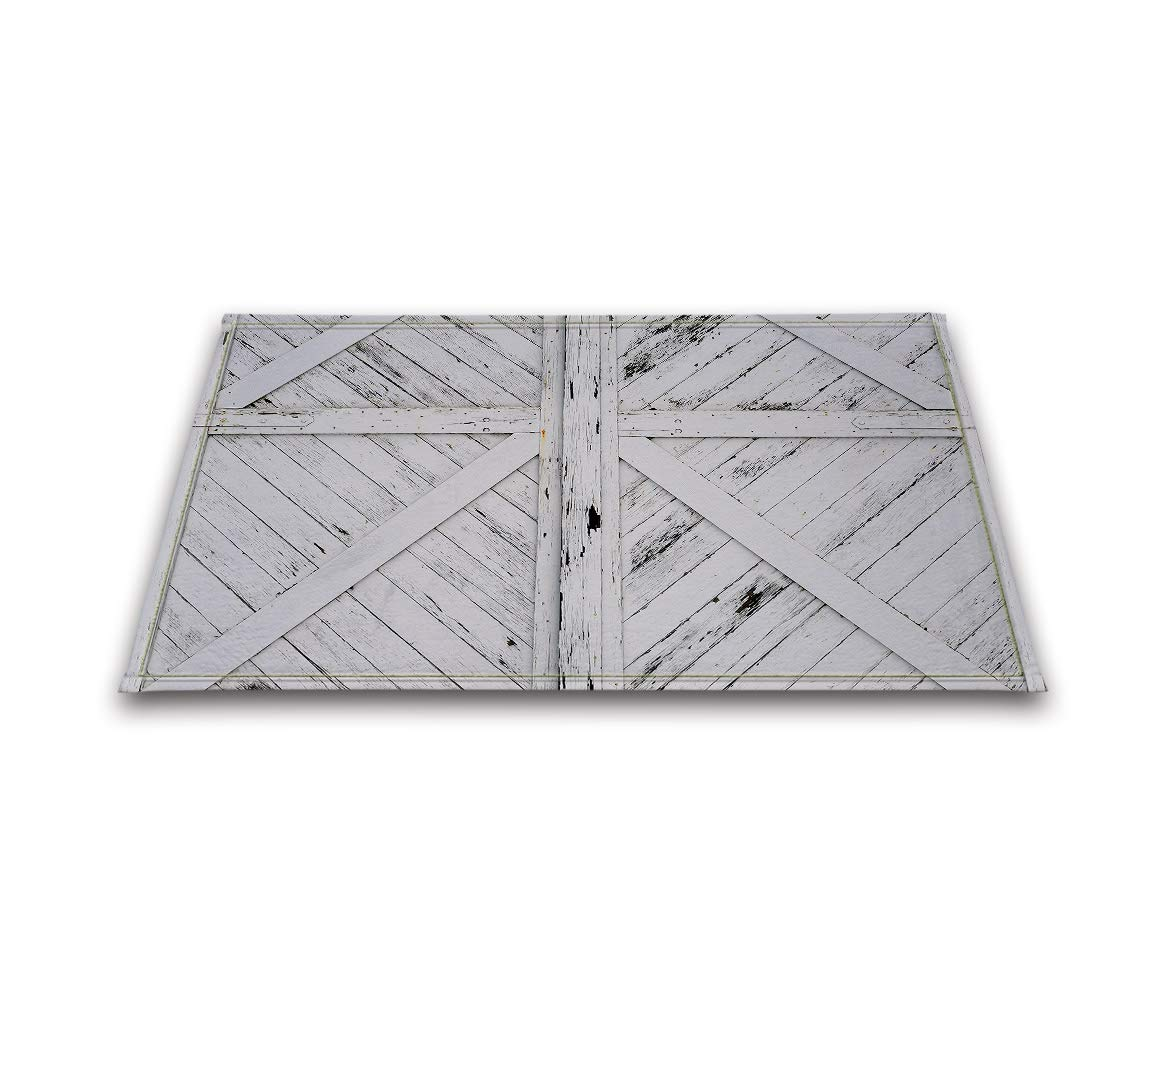 LB Rustic Barn Door White Painted Barn Wood Decor Rugs for Bathroom Bedroom, Anti Skip Rubber Backing Comfortable Soft Surface, Western Country Theme Decorative Rug 15 x 23 Inches